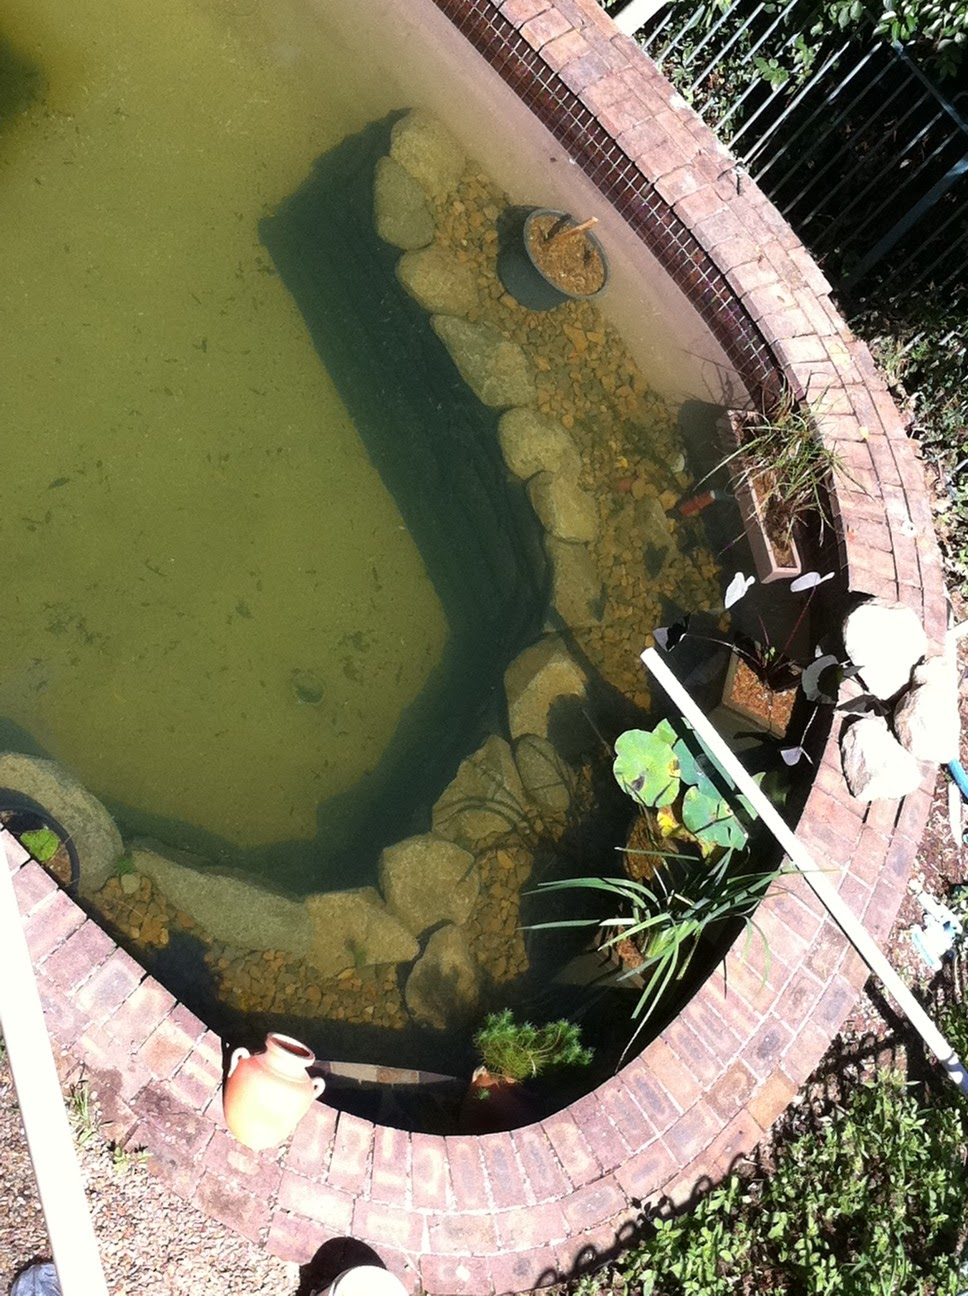 Beryl 39 s natural swim pond blood worms and fish for Fishing worms near me